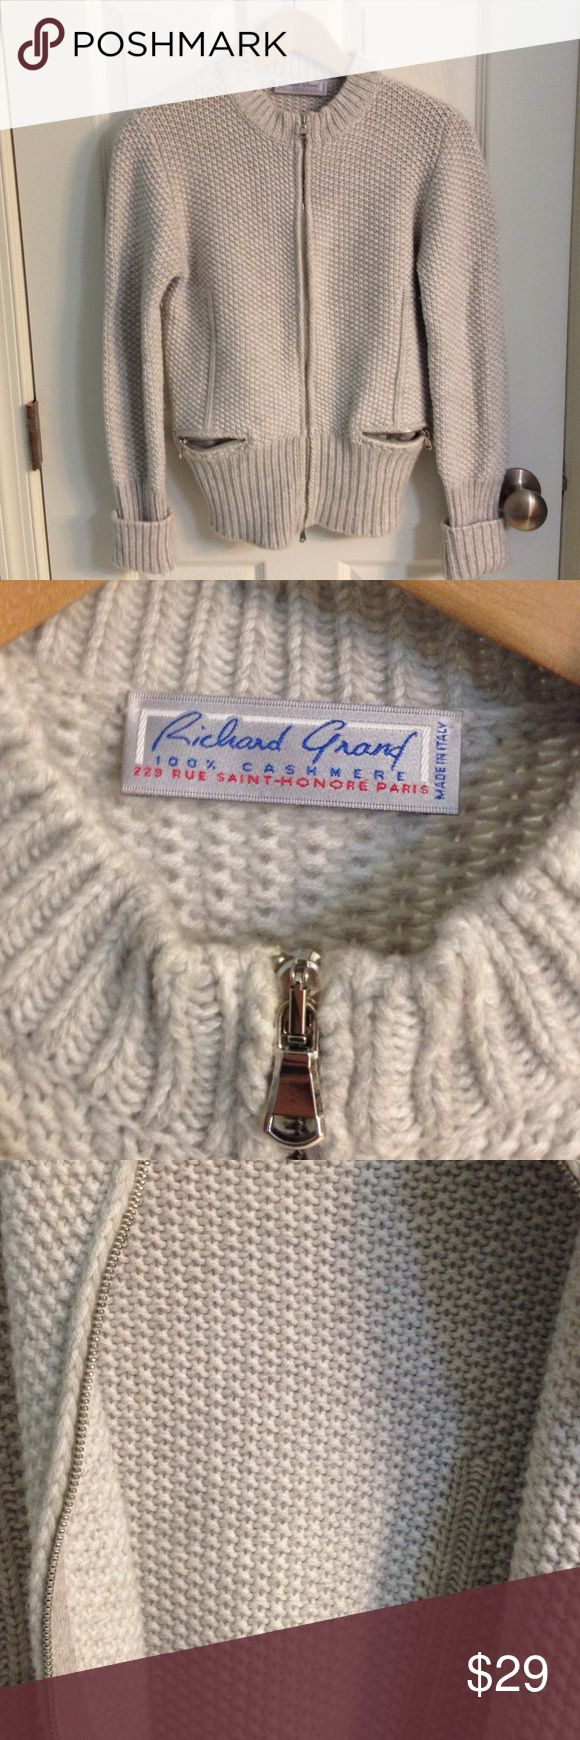 Richard Grand Cardigan Sweater 100 % Cashmere.  Made in Italy.  Rich oatmeal color. Tag says Medium, but runs more like a small. Beautiful weave.  Barely worn.  Excellent condition. Offers welcome! Richard Grand Sweaters Cardigans